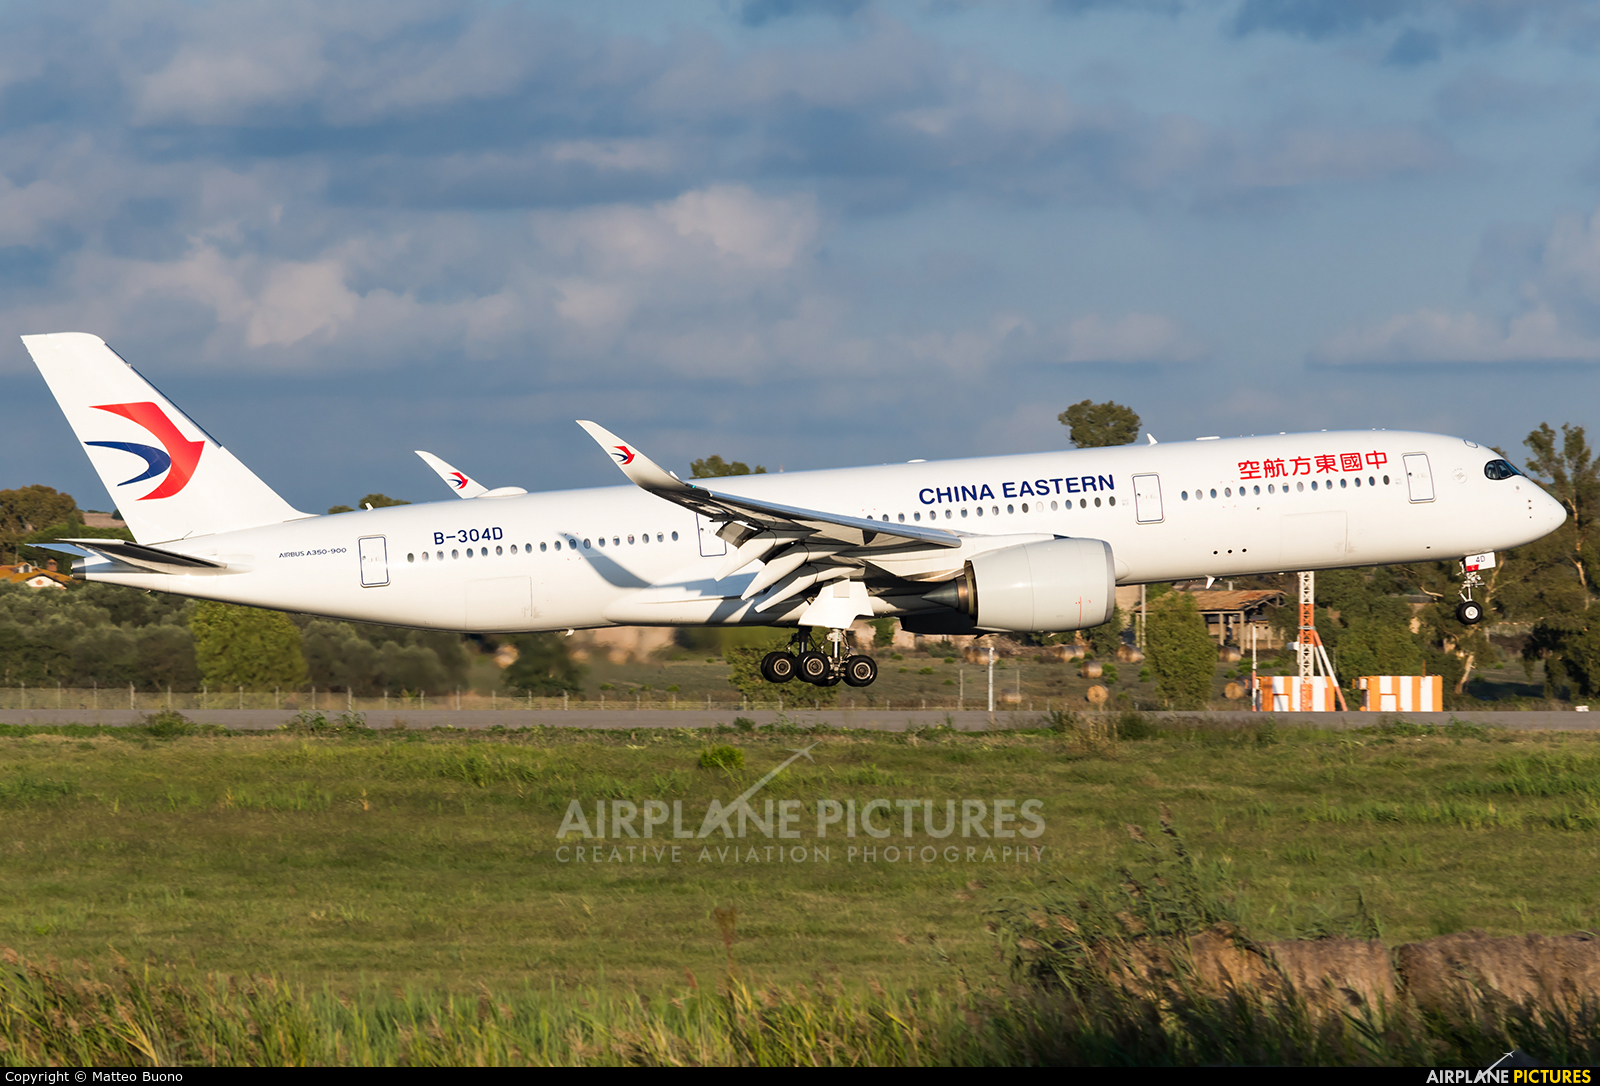 China Eastern Airlines B-304D aircraft at Rome - Fiumicino